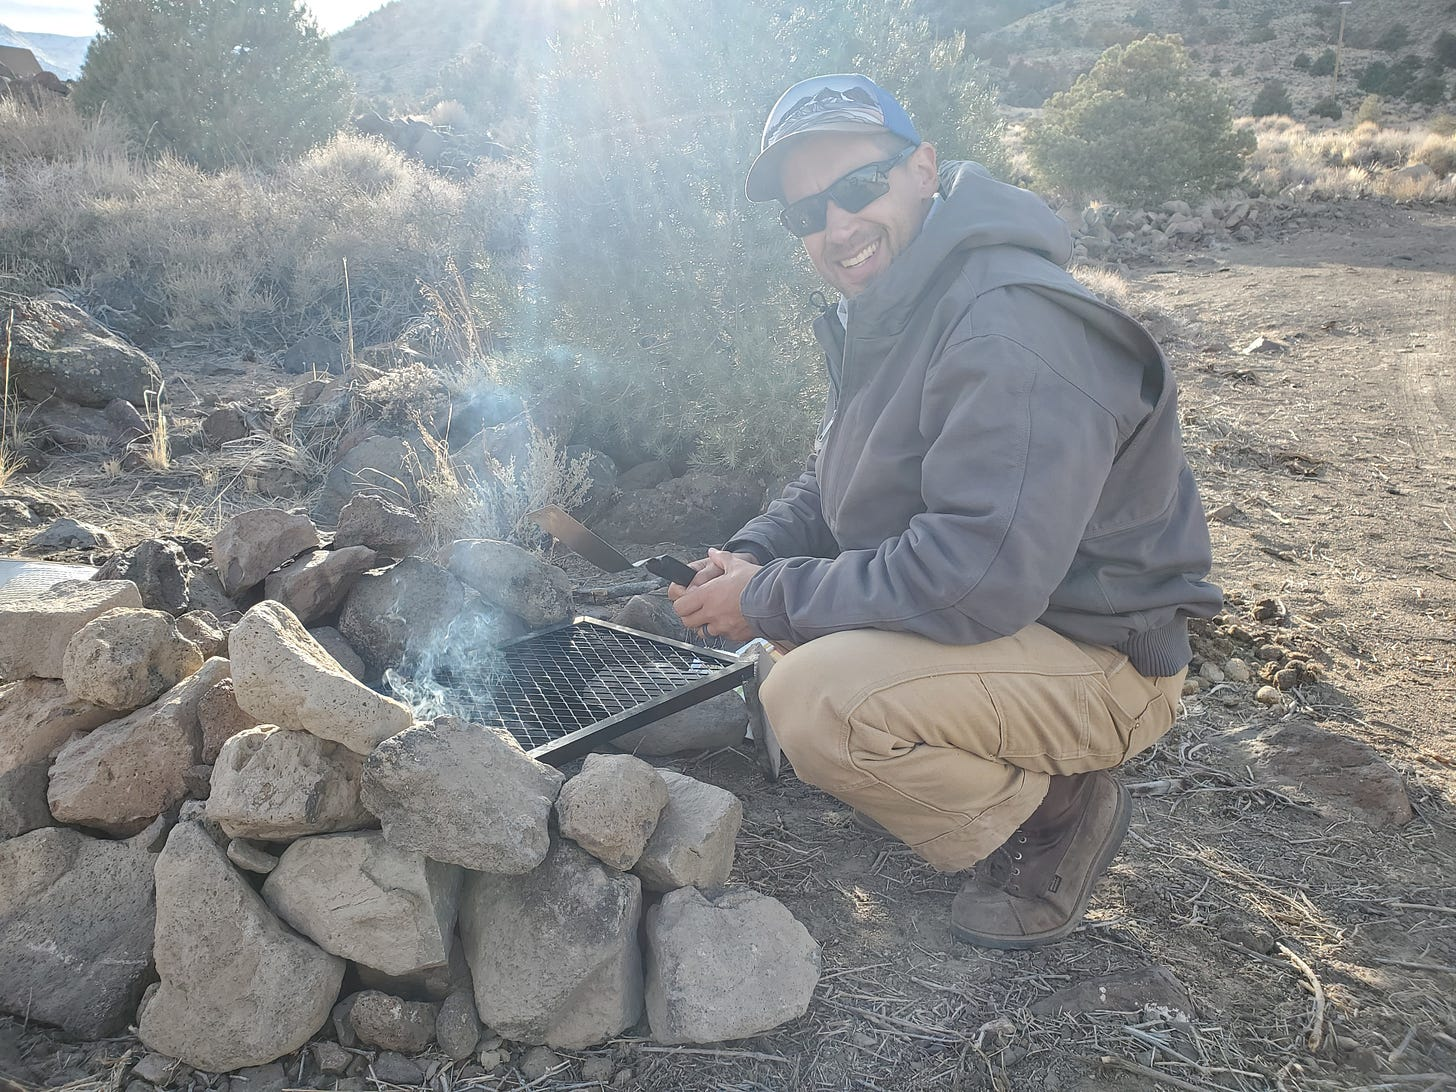 Eric squatting in front of a DIY grill supported by rows of rocks.